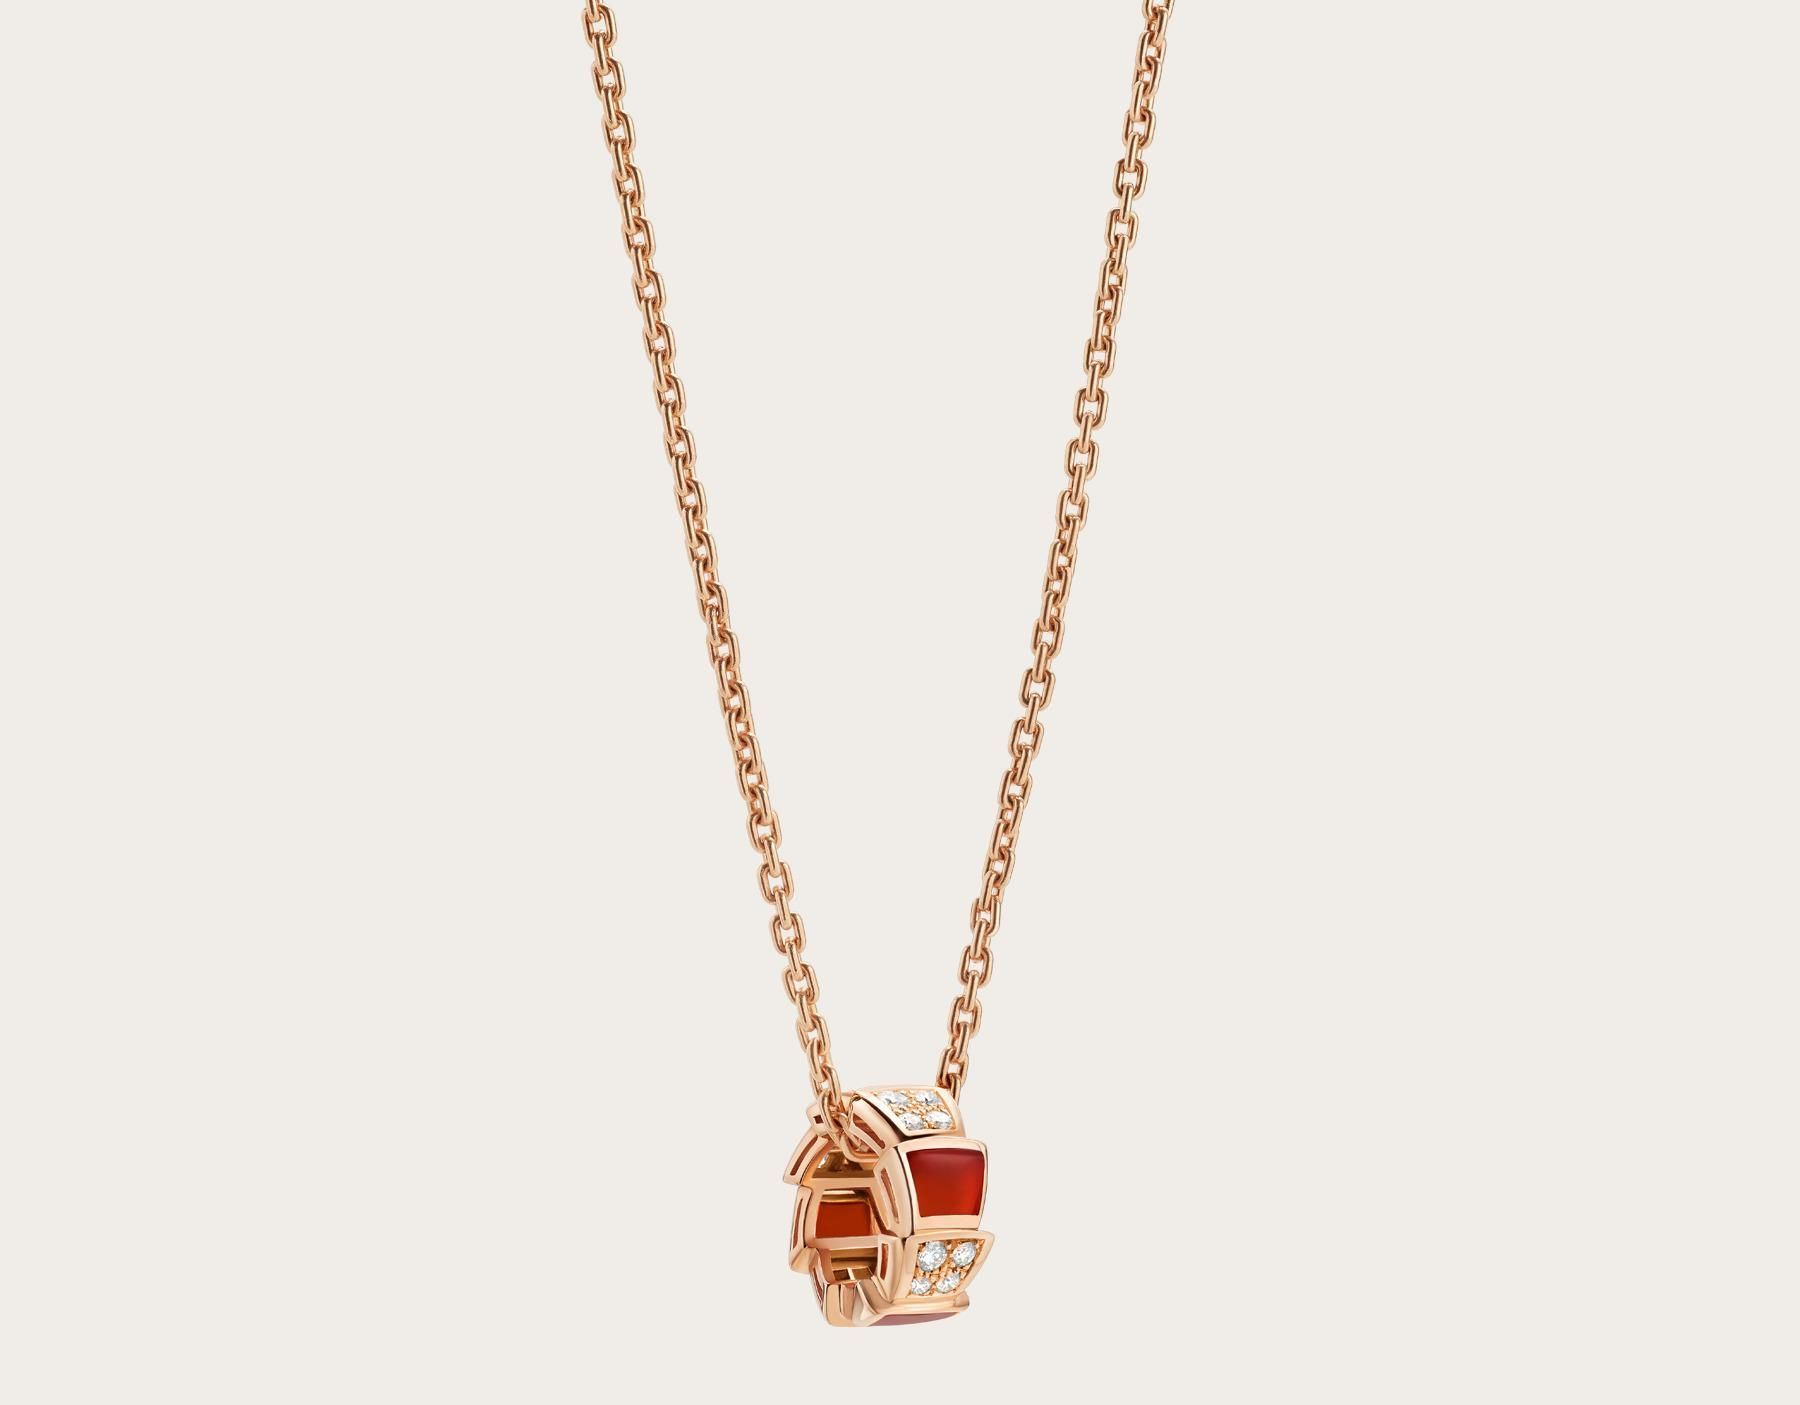 Photo number serpenti necklace with kt rose gold chain and